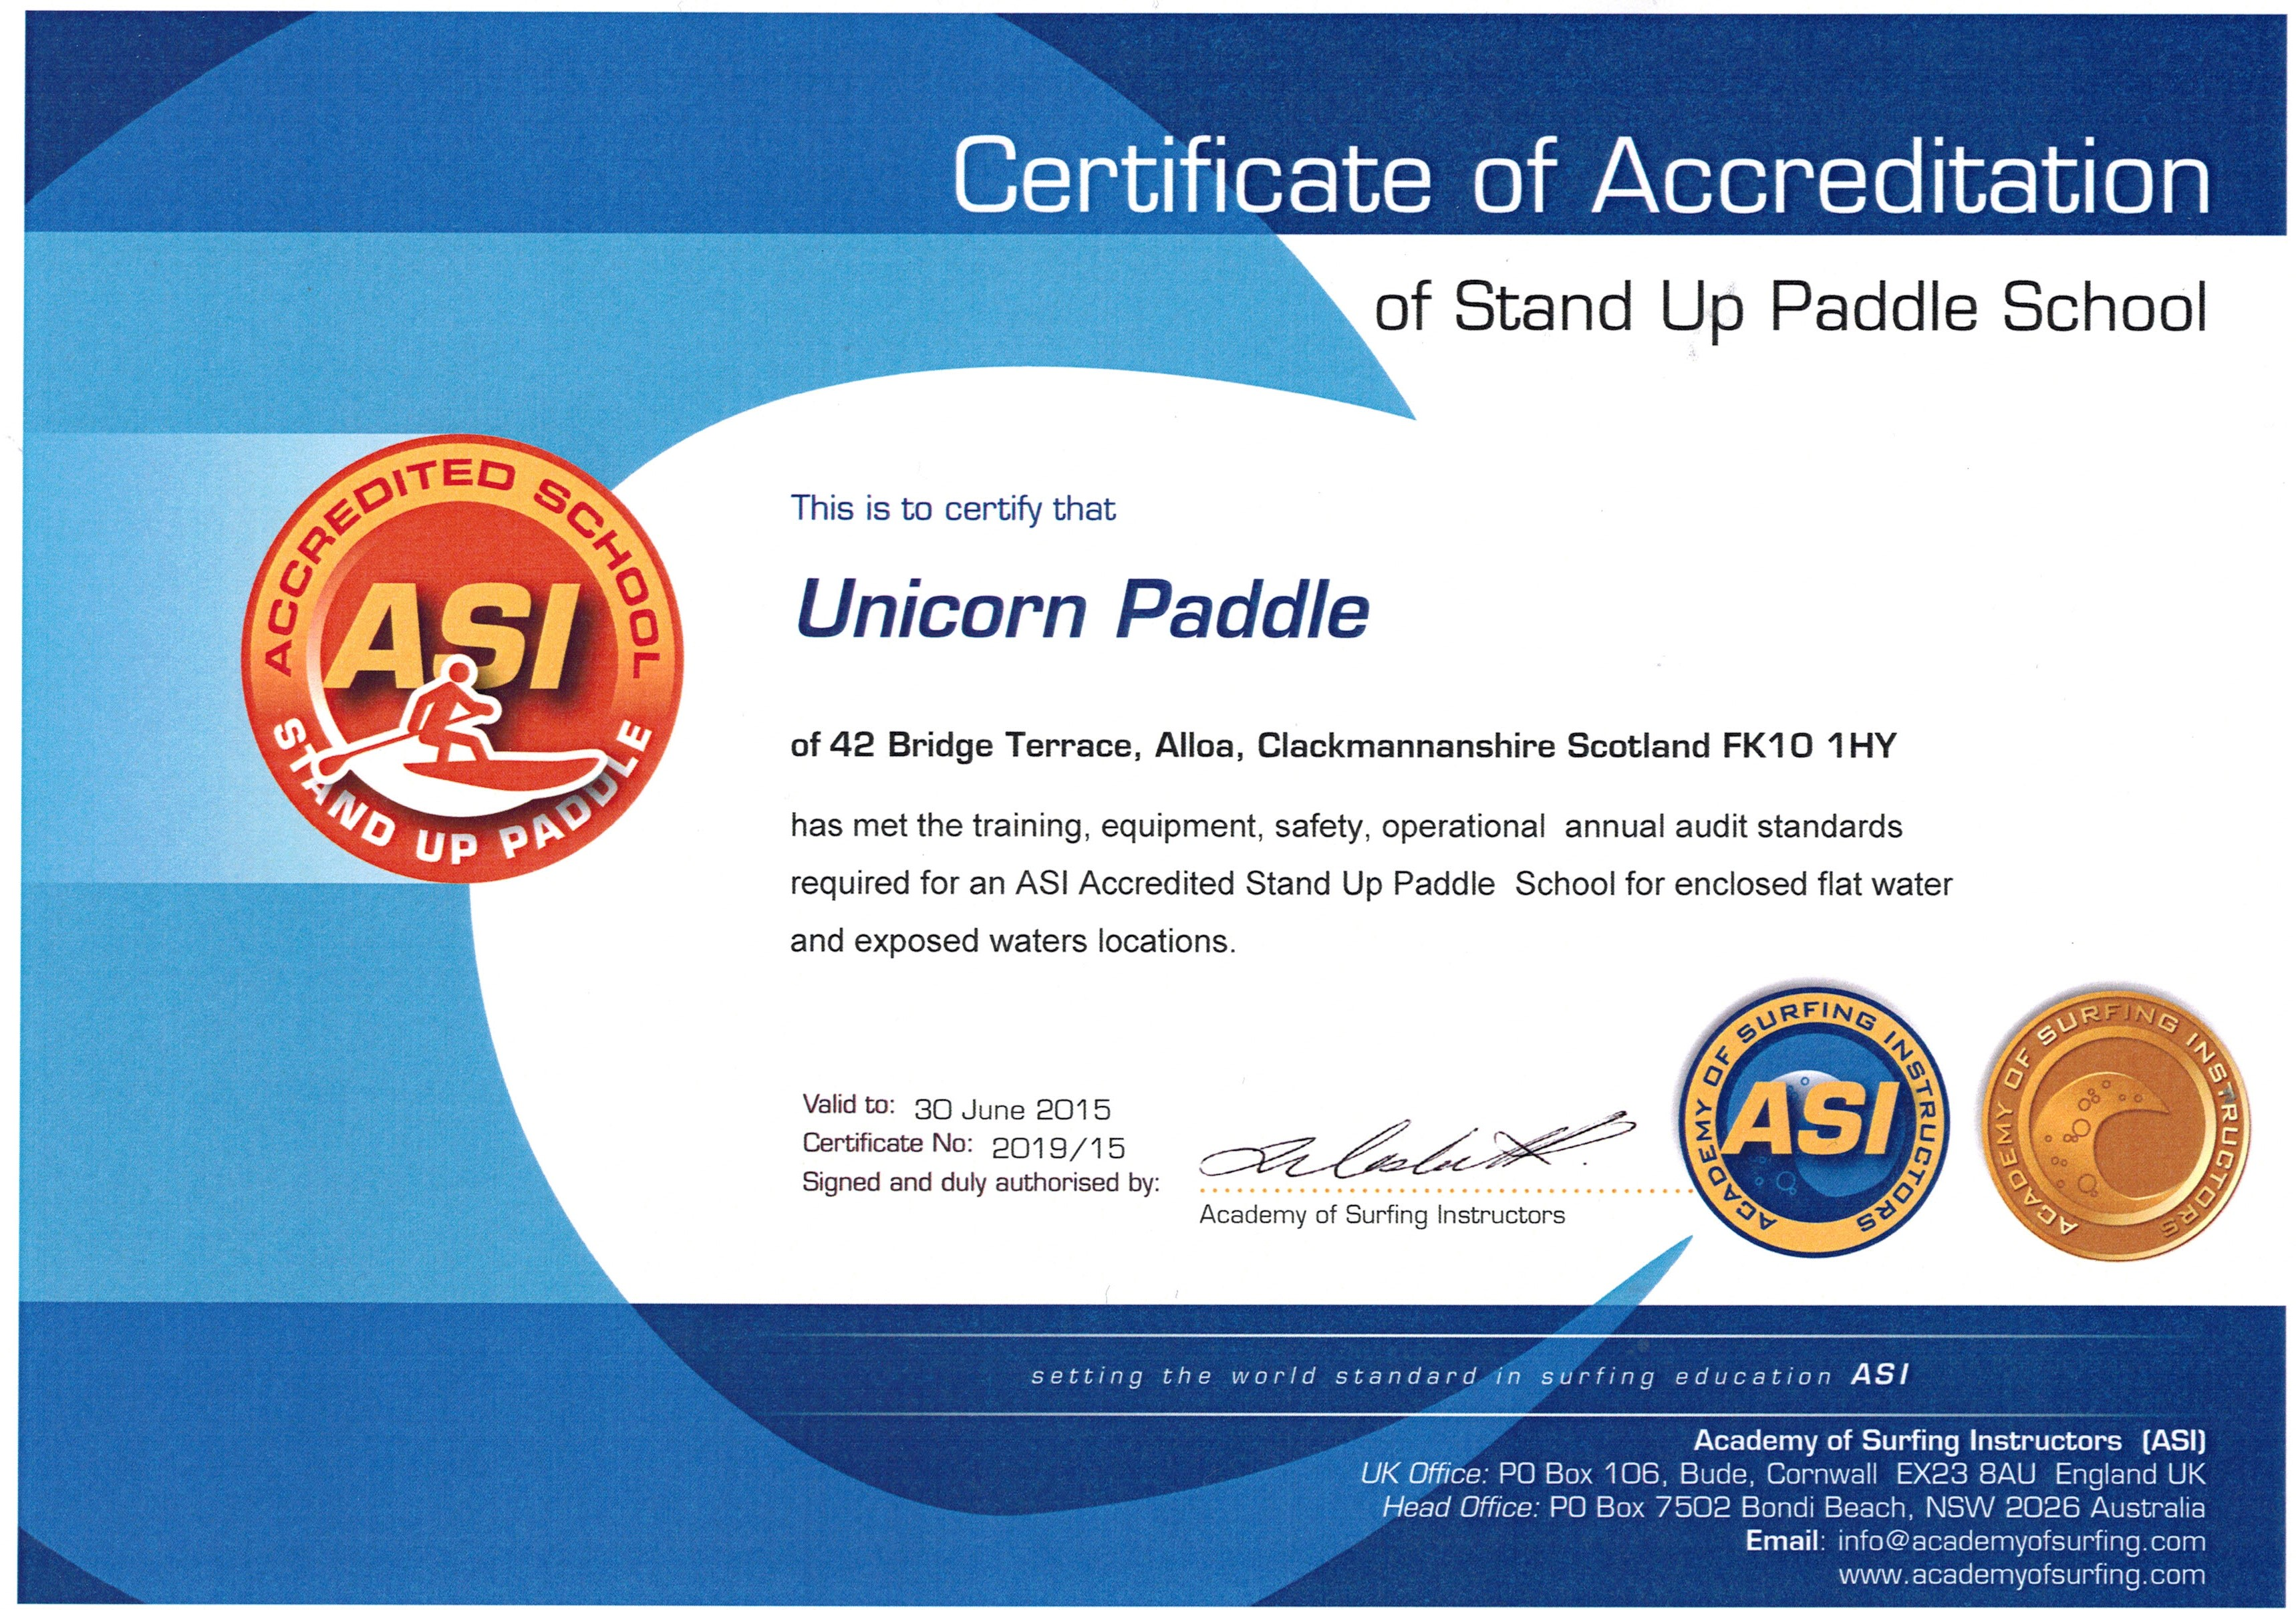 Unicorn paddle links instructor water safety award certificate of accreditation our insurance 1betcityfo Image collections